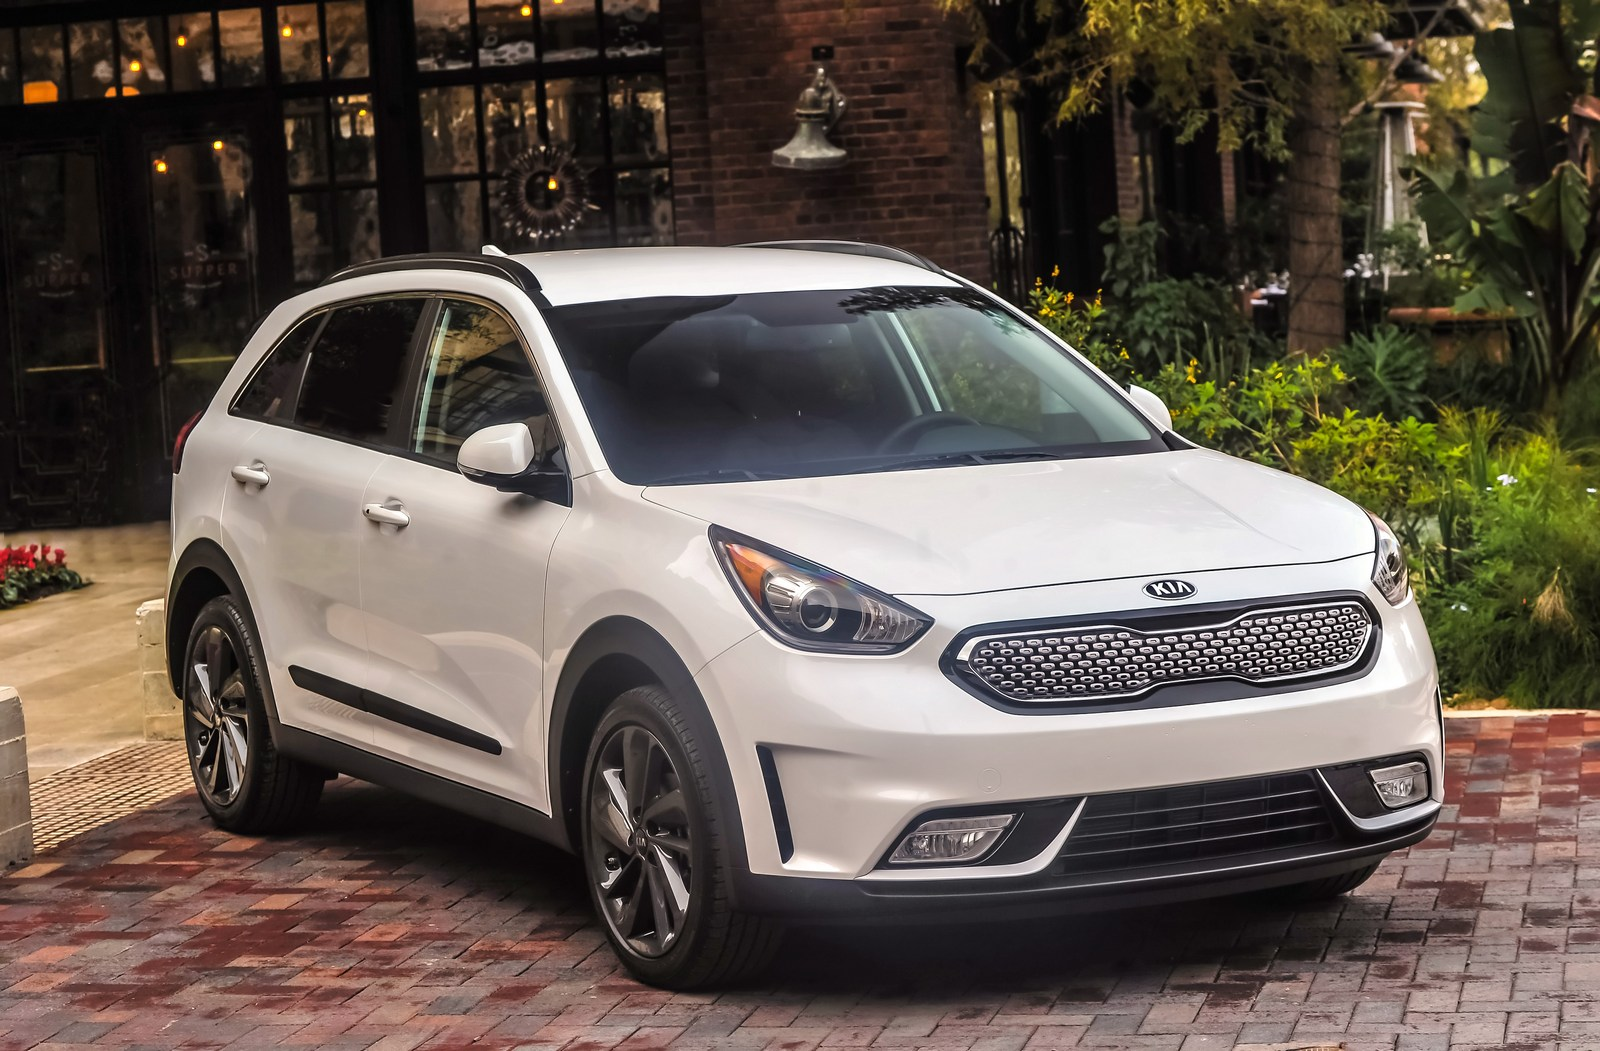 Kia Niro Outselling The Hyundai Ioniq By Nearly 3 To 1